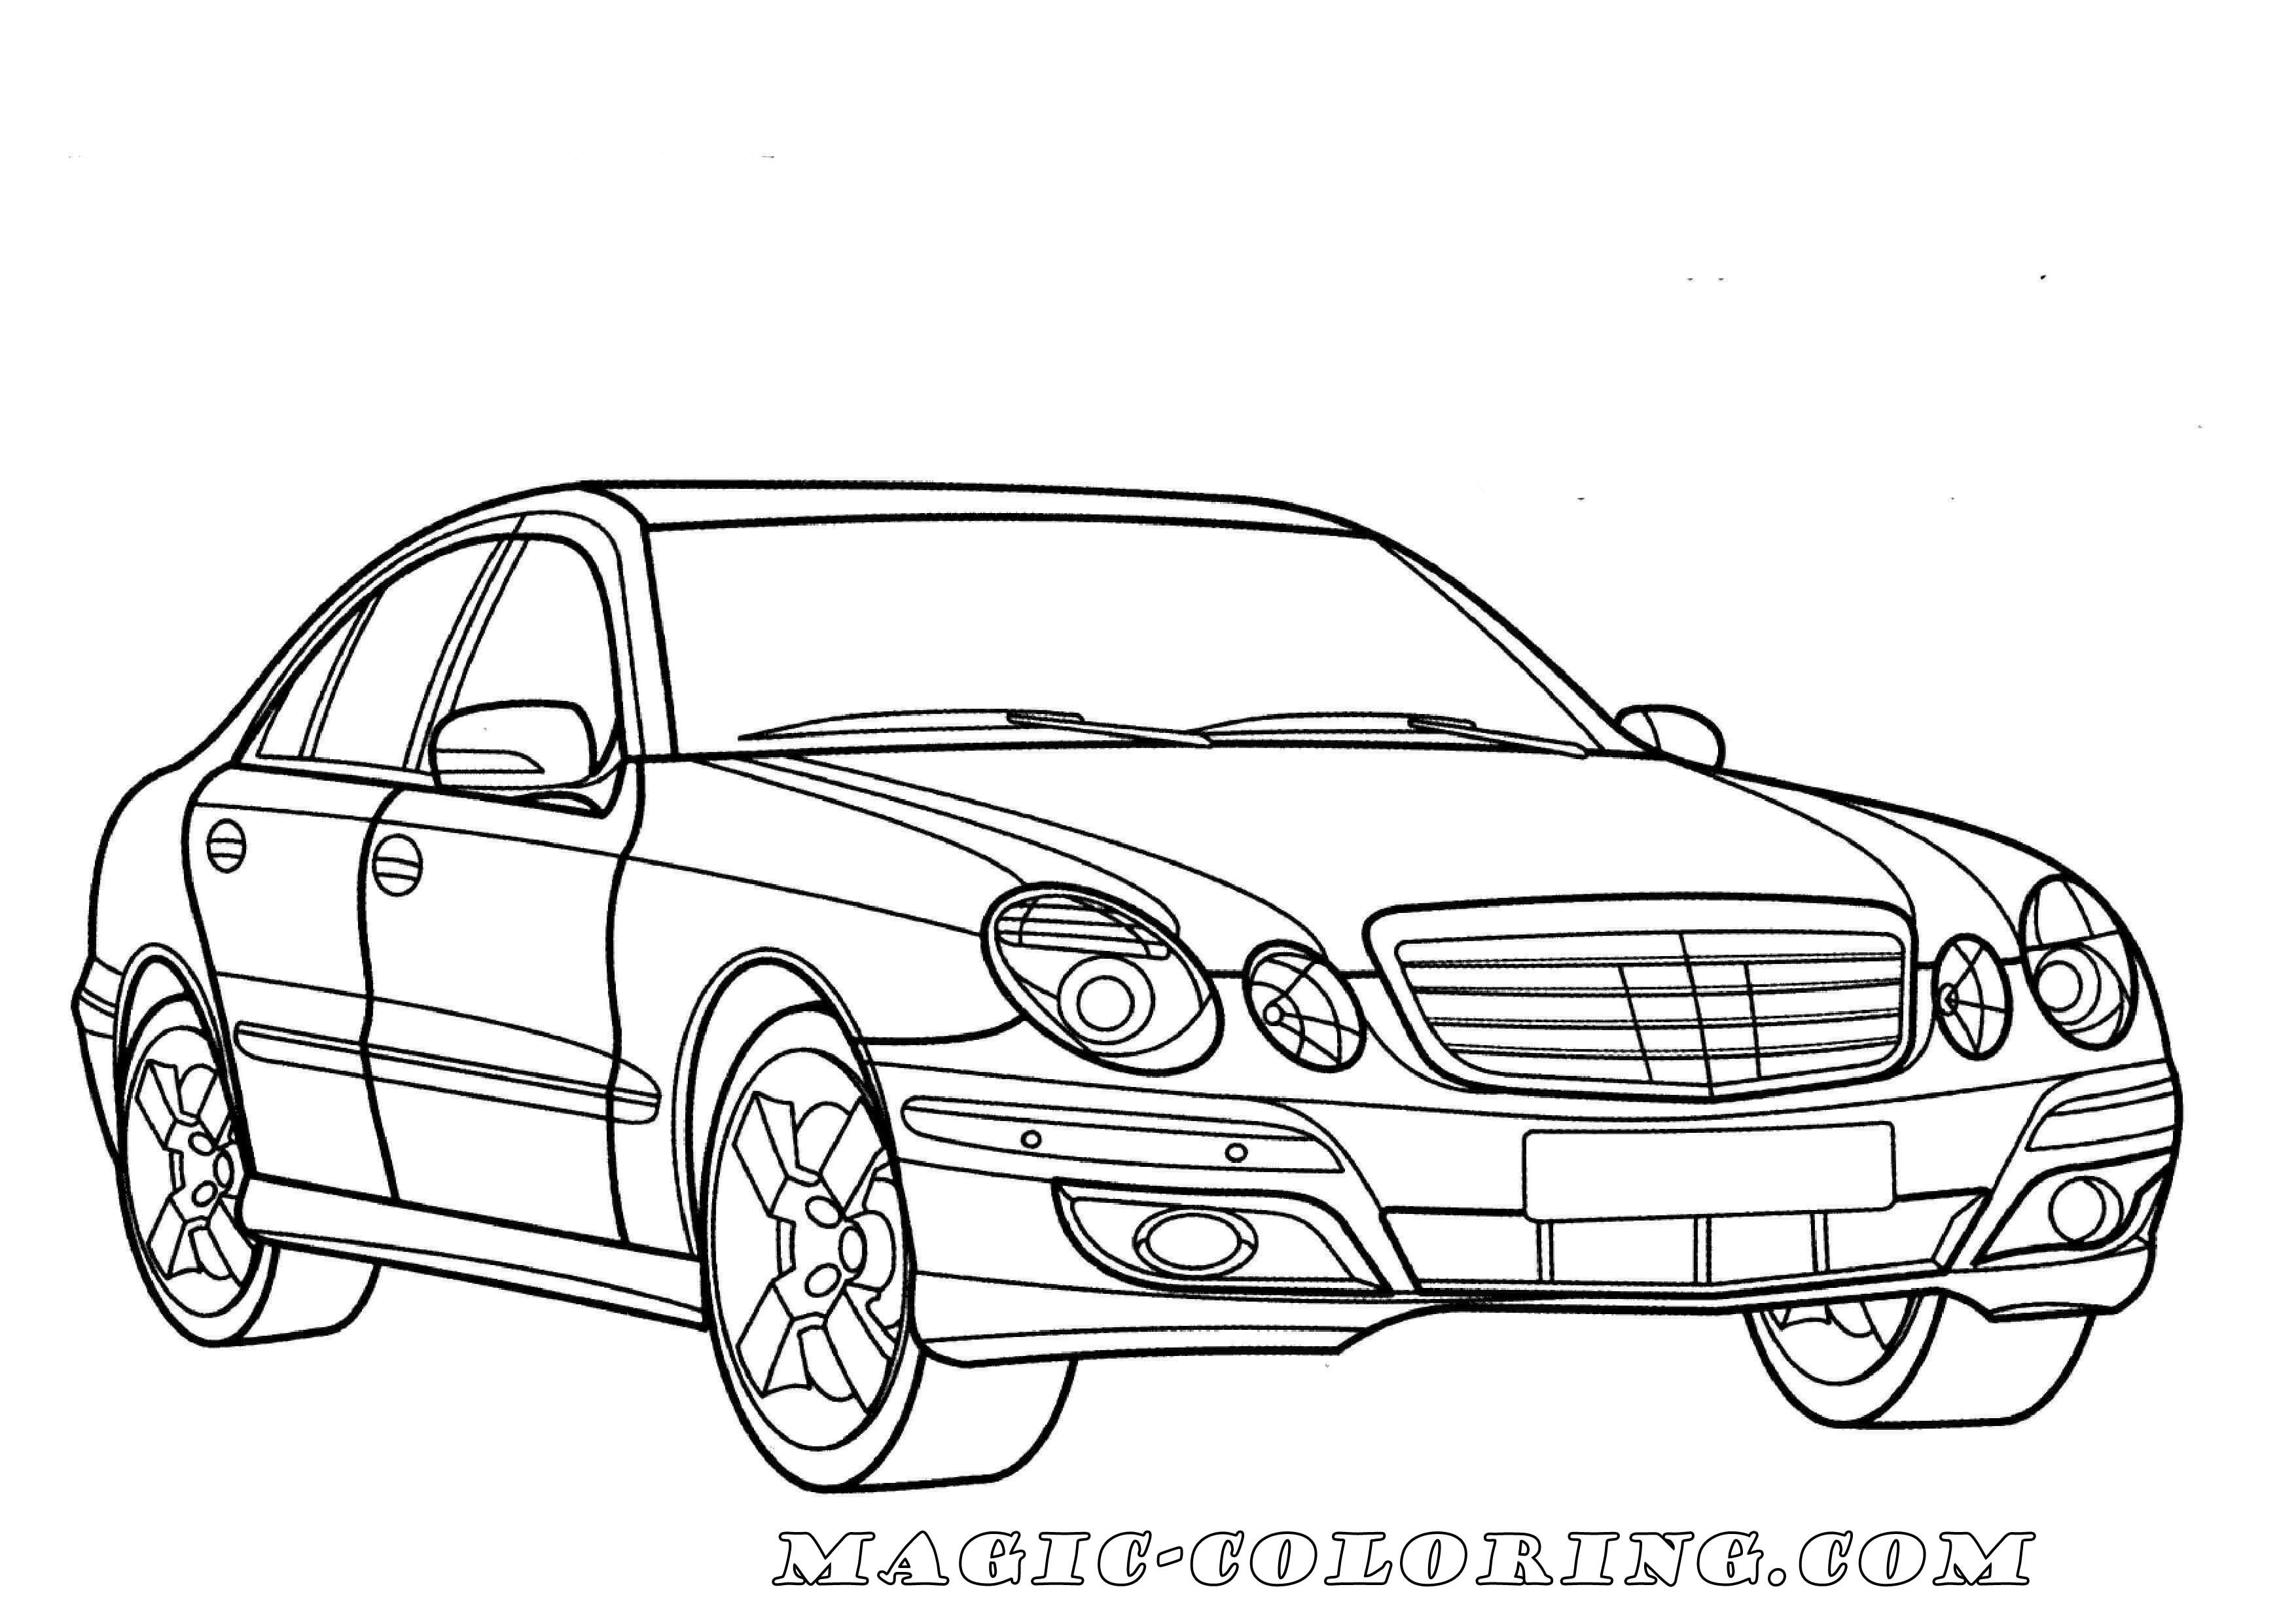 Mercedes E Class Coloring Page Truck Coloring Pages Cars Coloring Pages Coloring Pictures